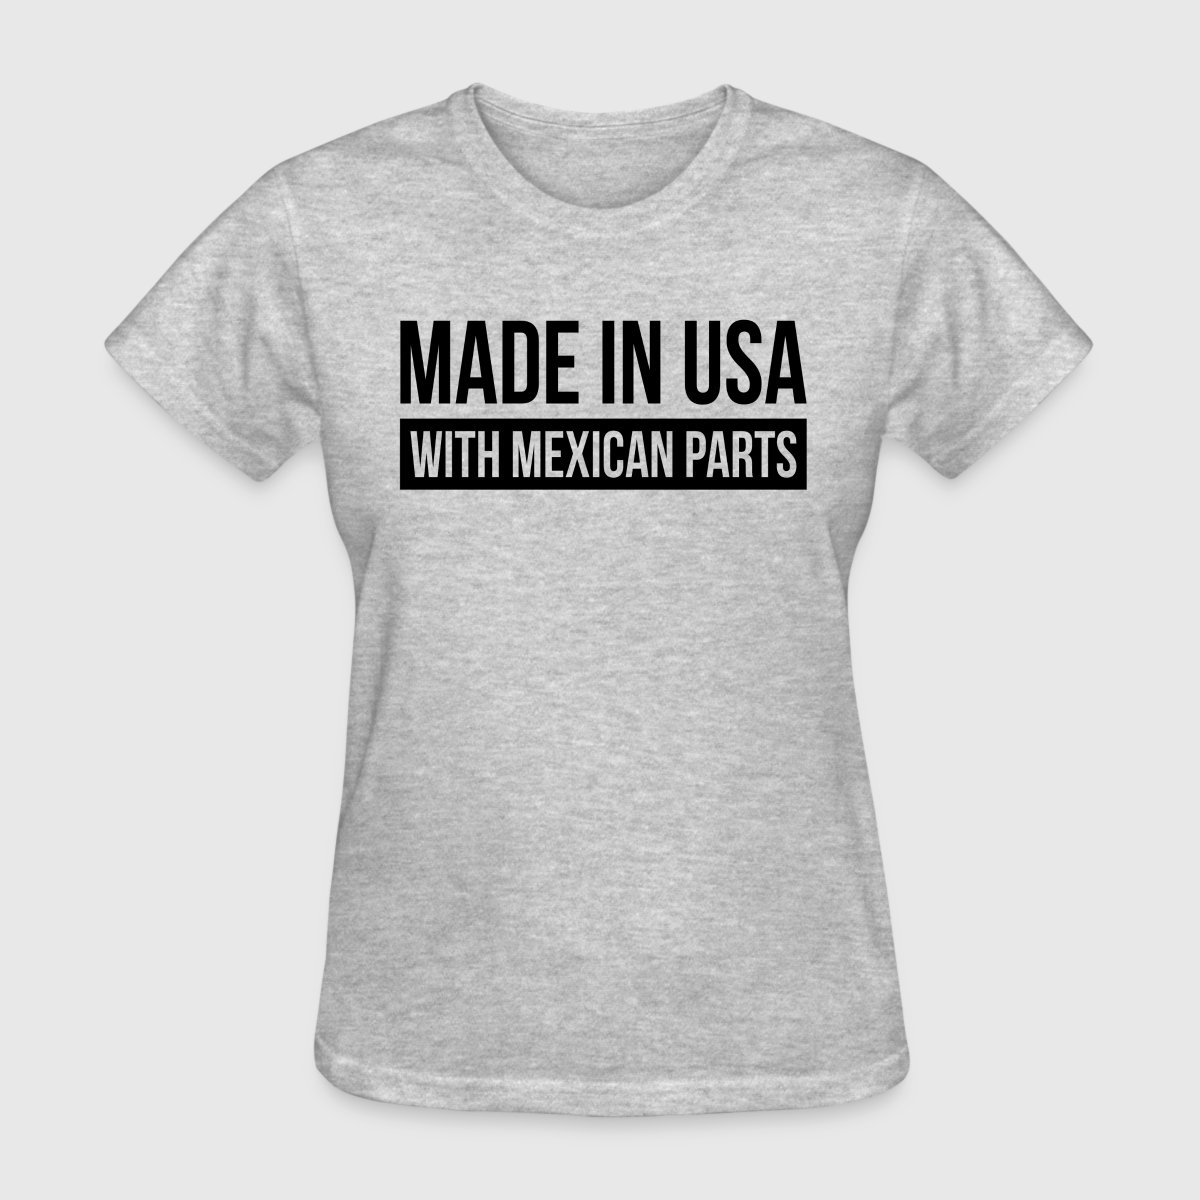 78595627e3a 15 American-Made Clothing Brands You Can Wear With Pride